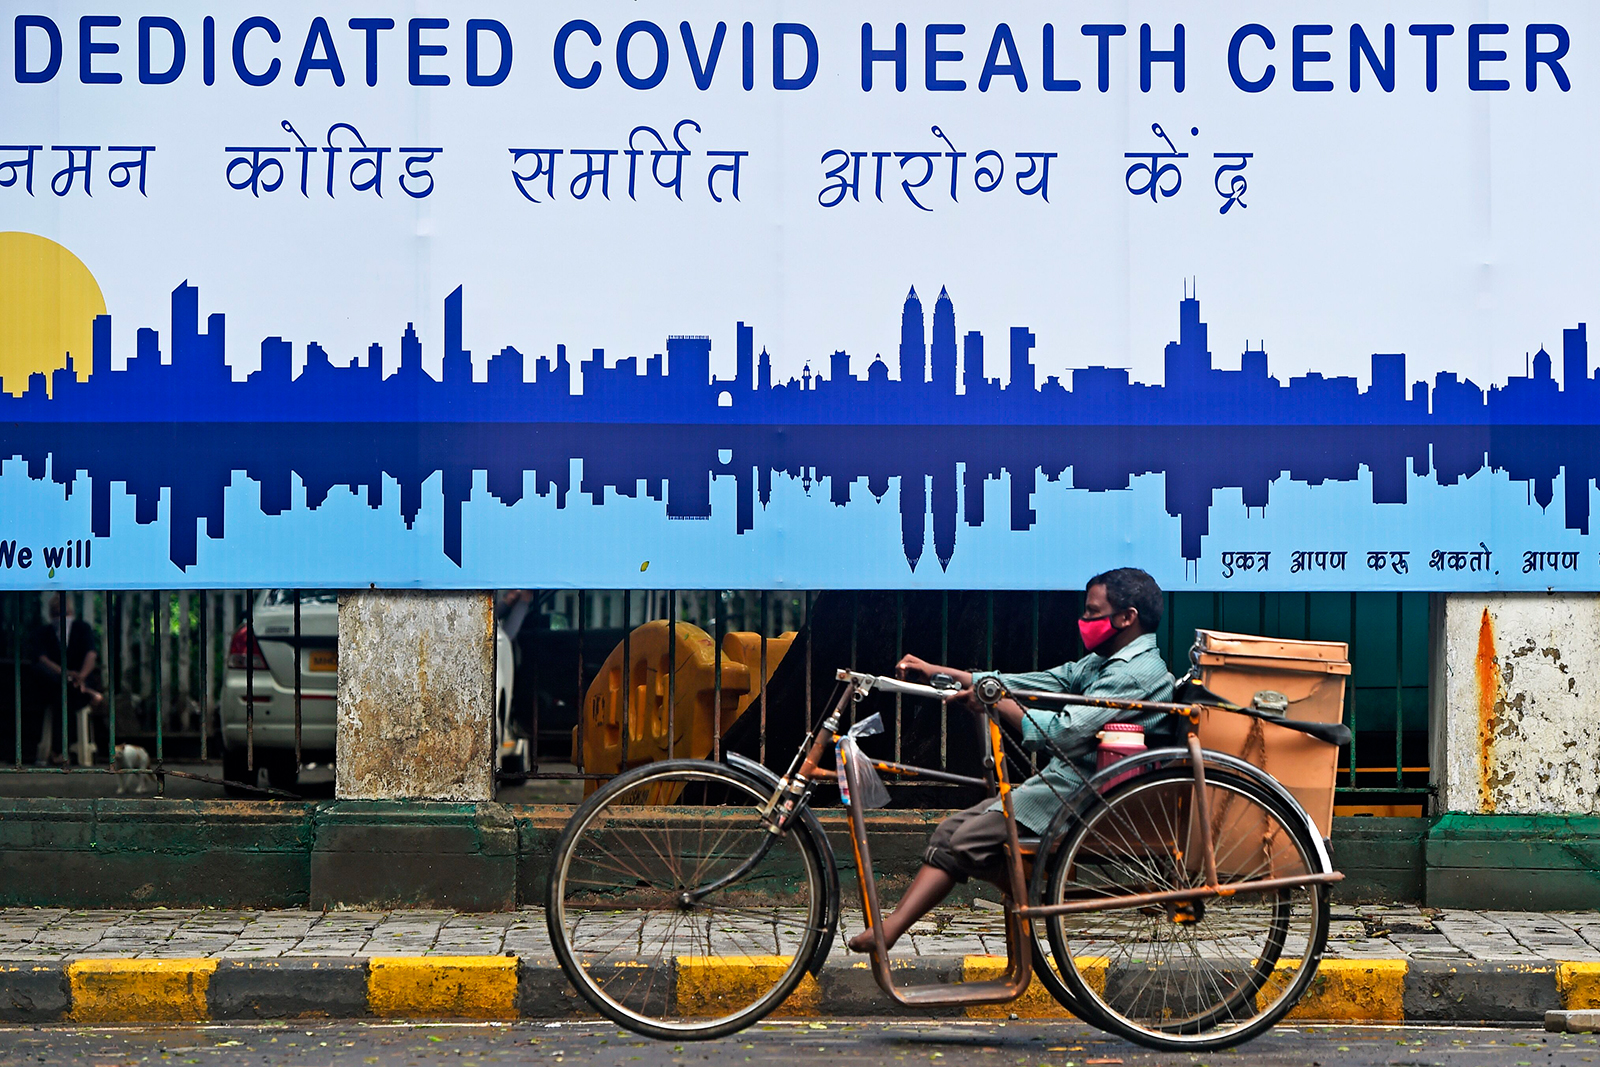 A man rides in front of a Covid-19 health center in Mumbai on July 7.